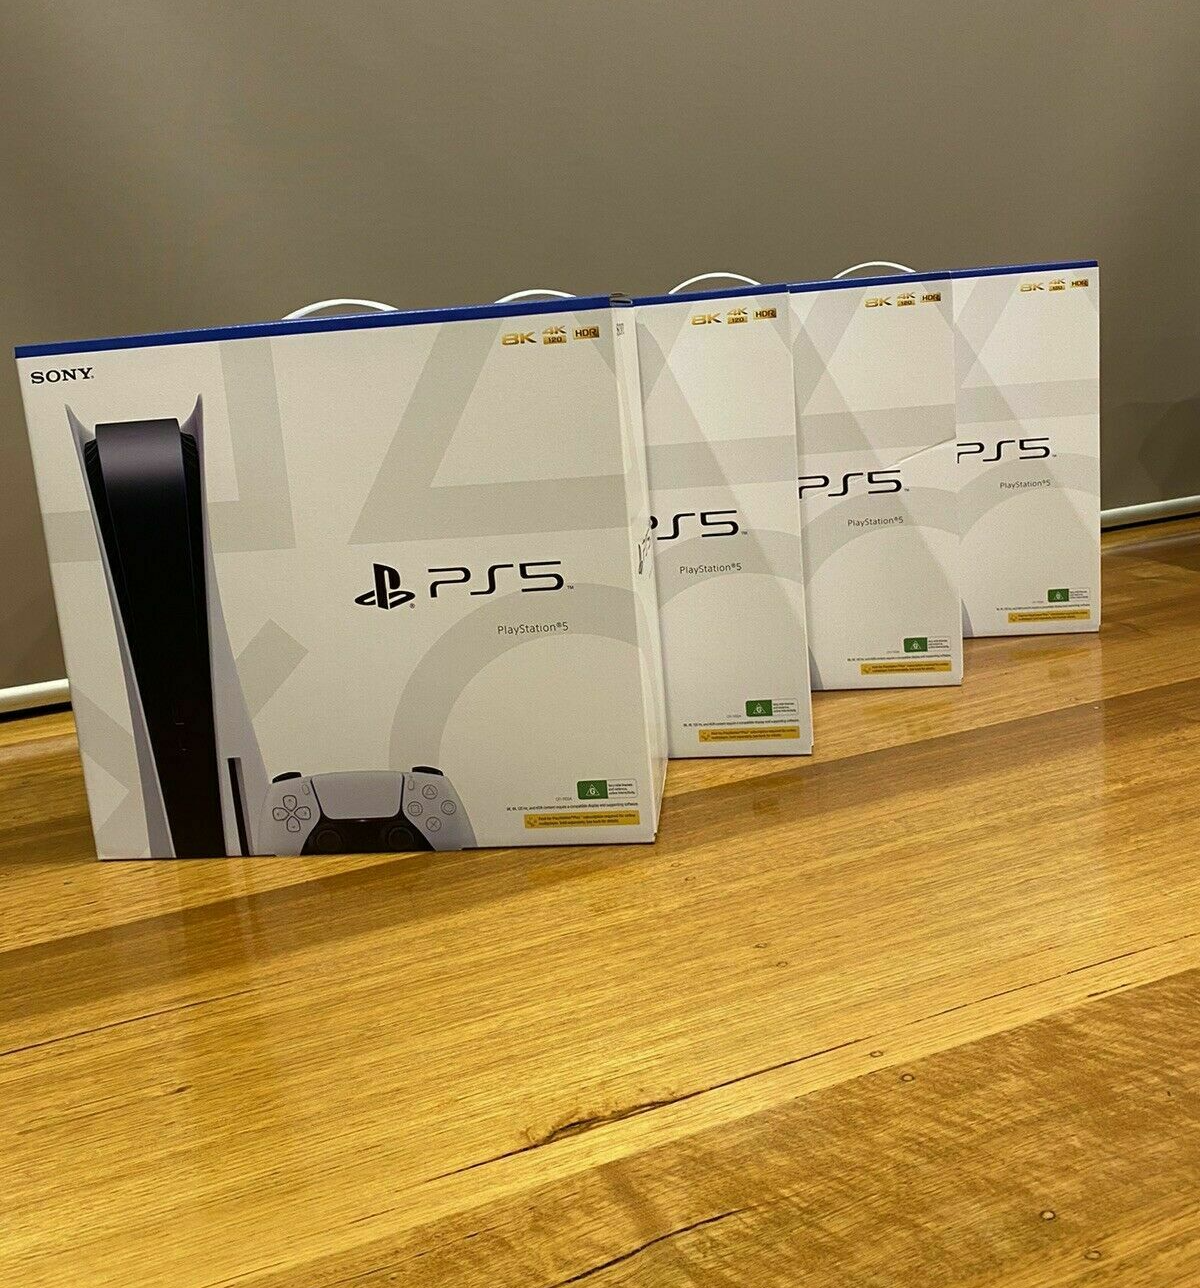 Playstation 5 Sony PS5 DISC / DIGITAL Edition   Brand New   FREE SHIP